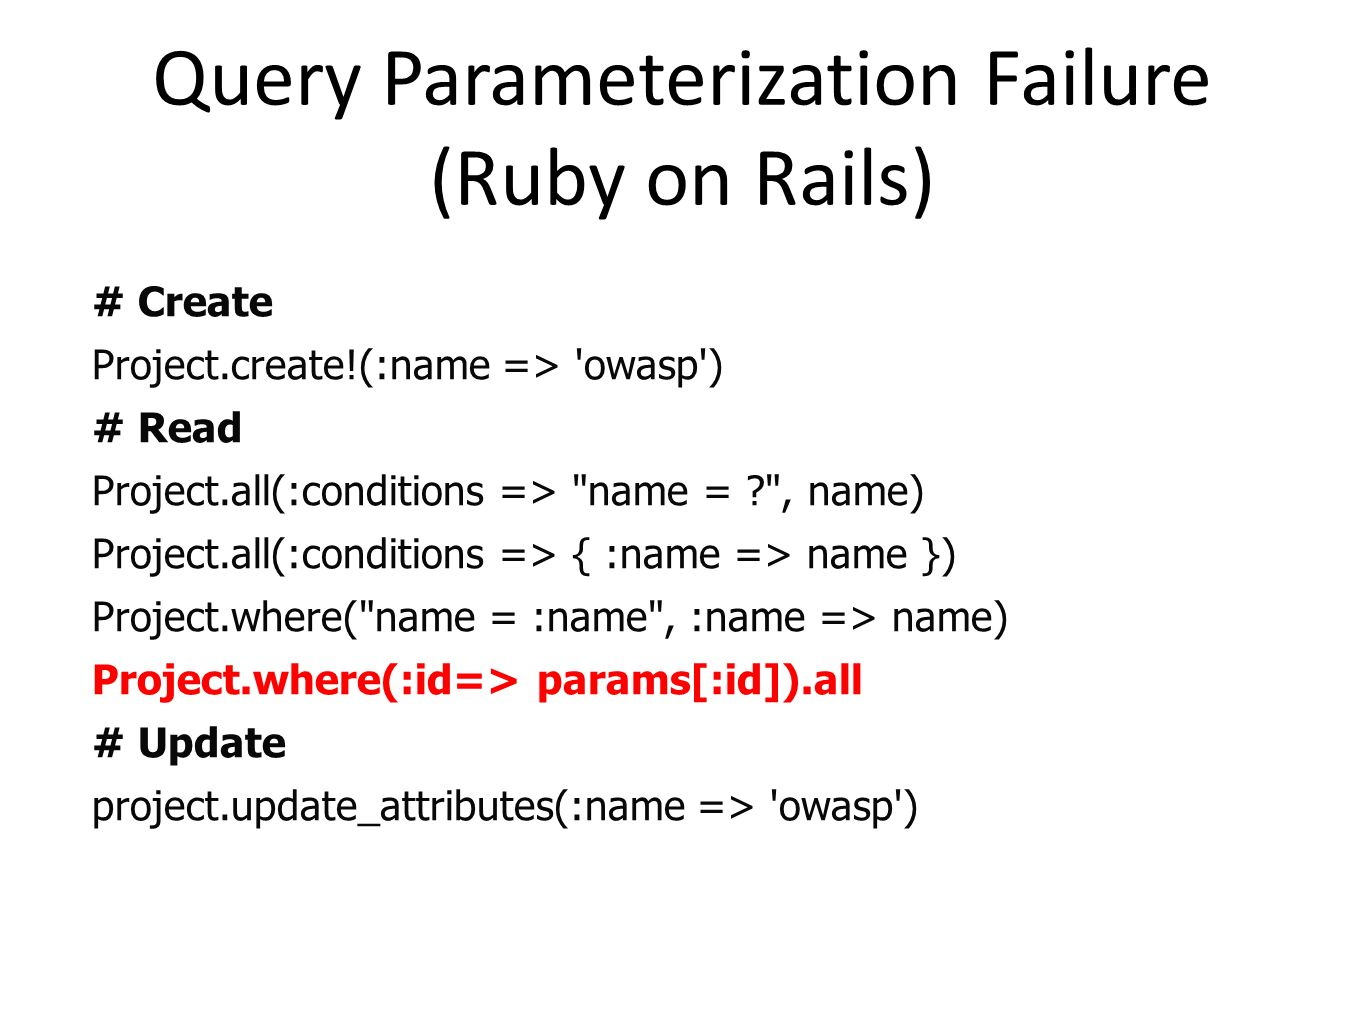 Query Parameterization Failure (Ruby on Rails) # Create Project.create!(:name => 'owasp') # Read Project.all(:conditions =>